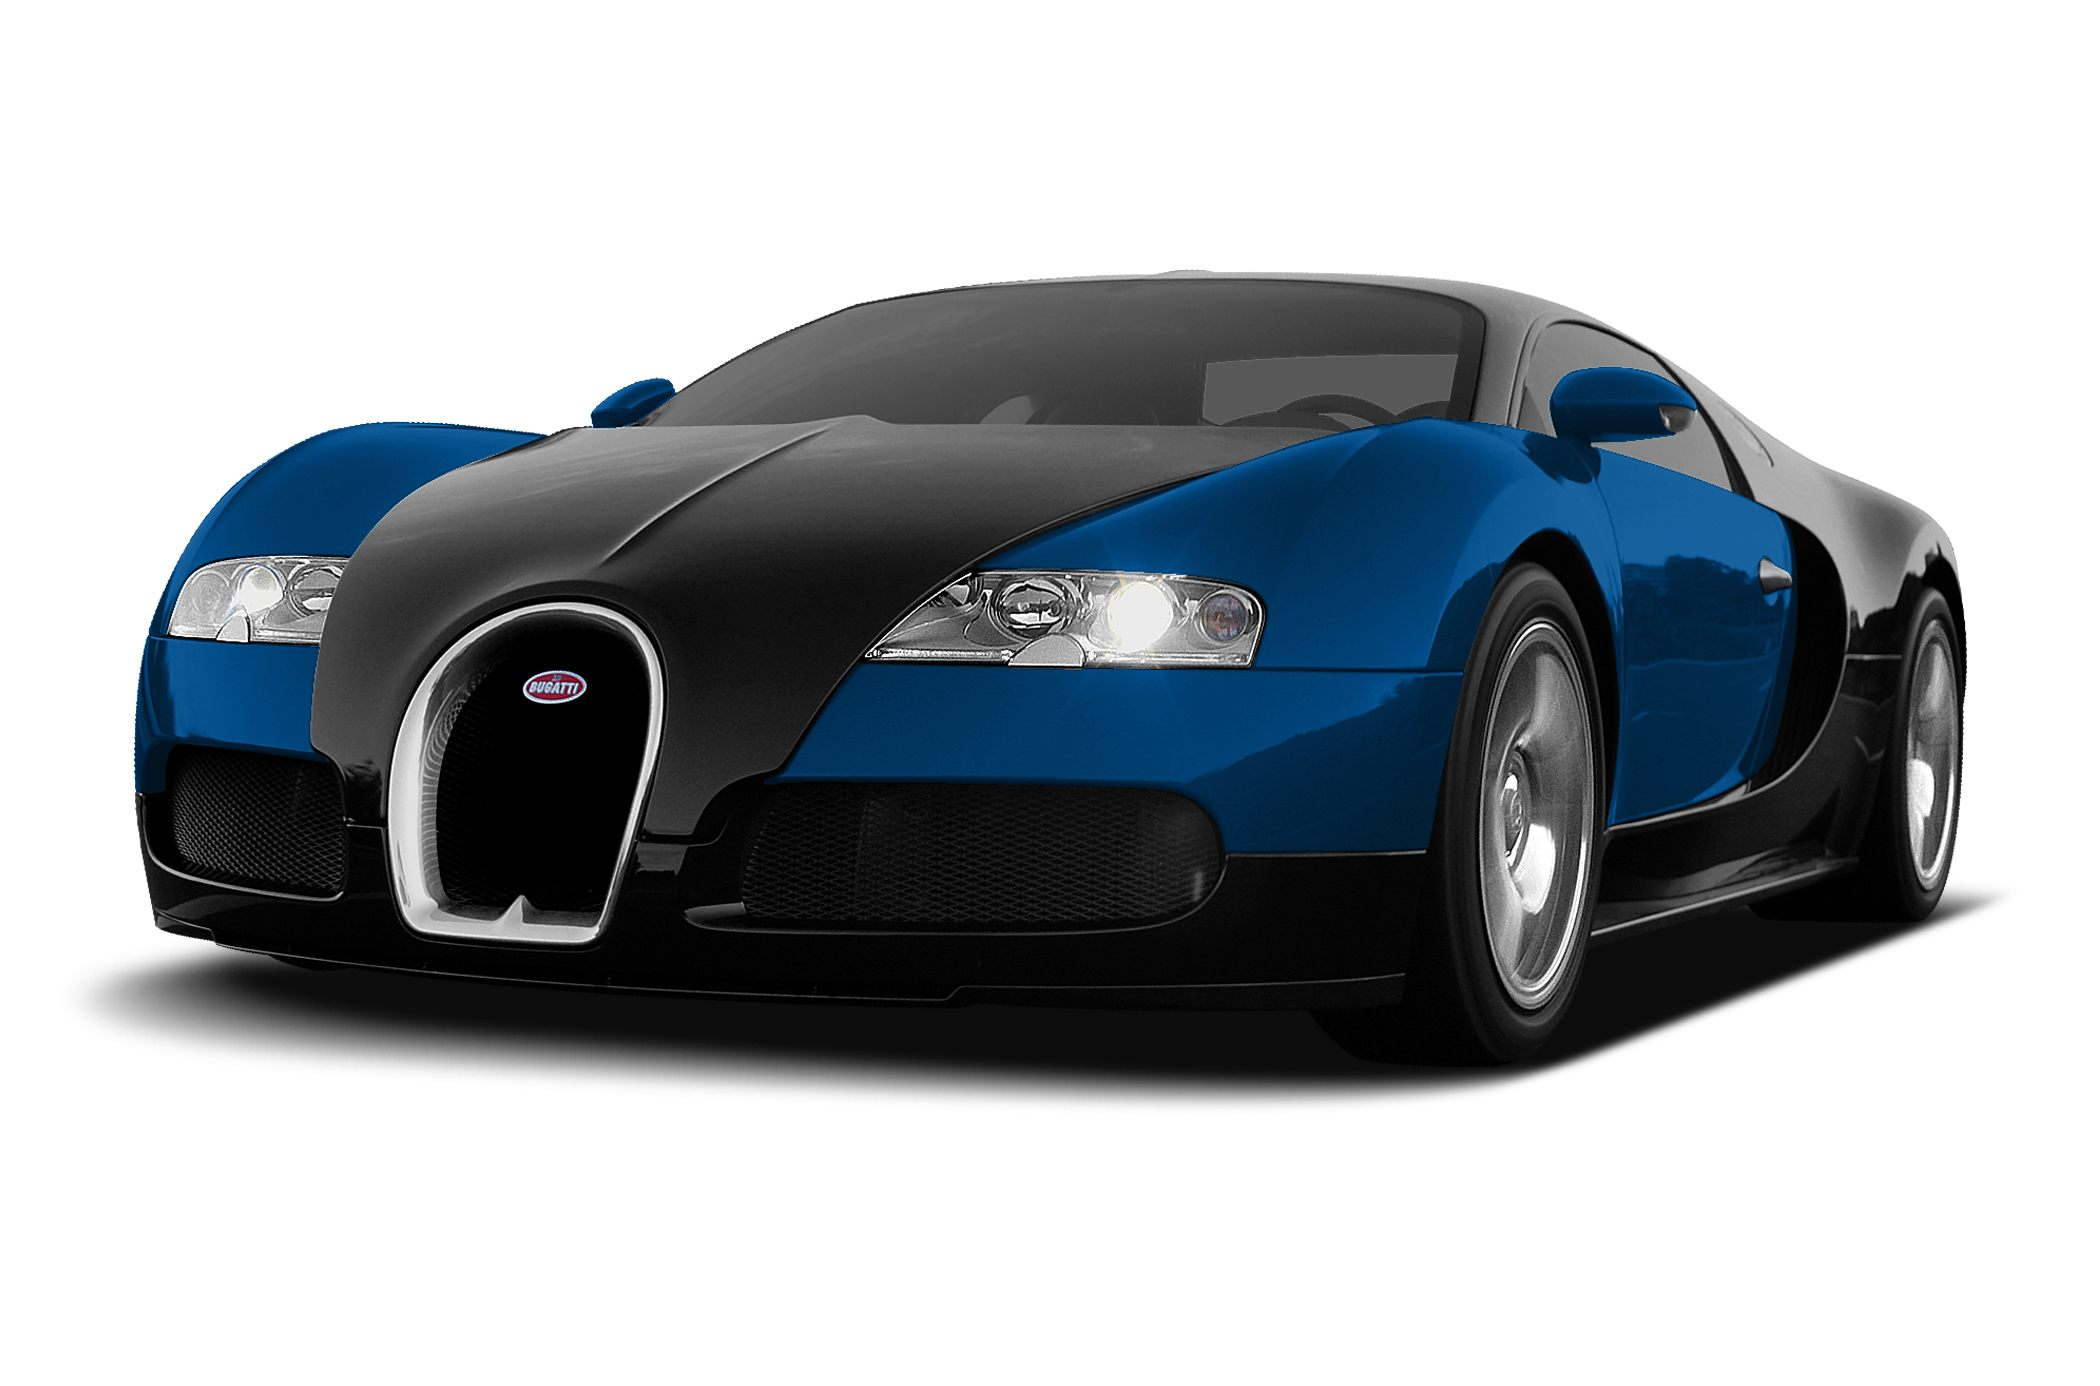 2009 Bugatti Veyron